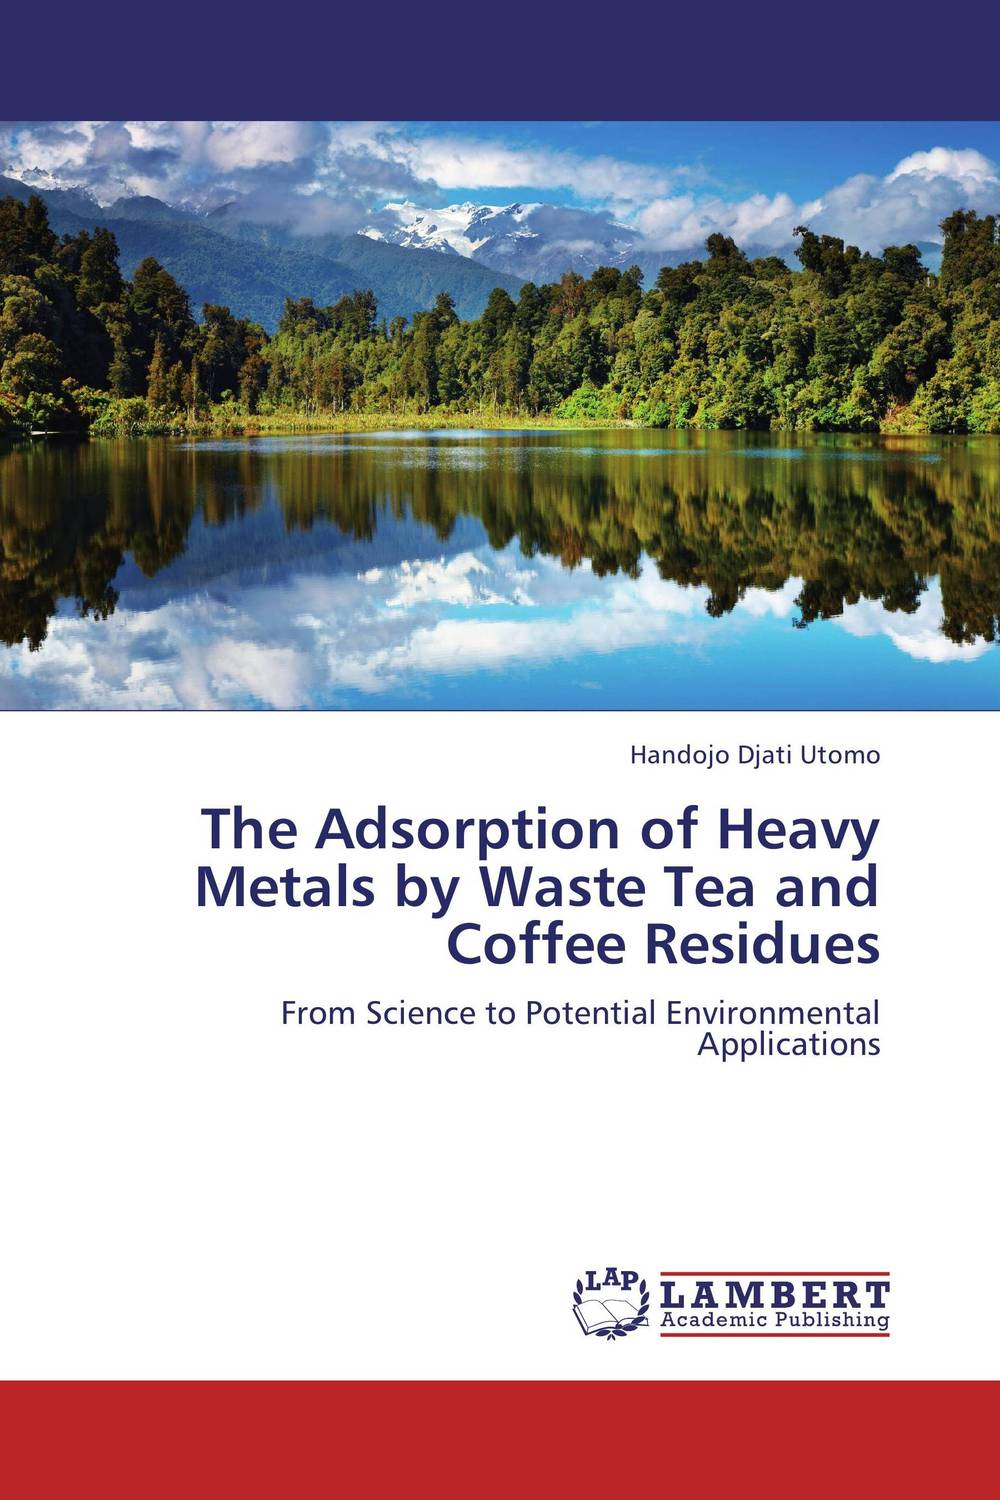 The Adsorption of Heavy Metals by Waste Tea and Coffee Residues biodegradation of coffee pulp waste by white rotters